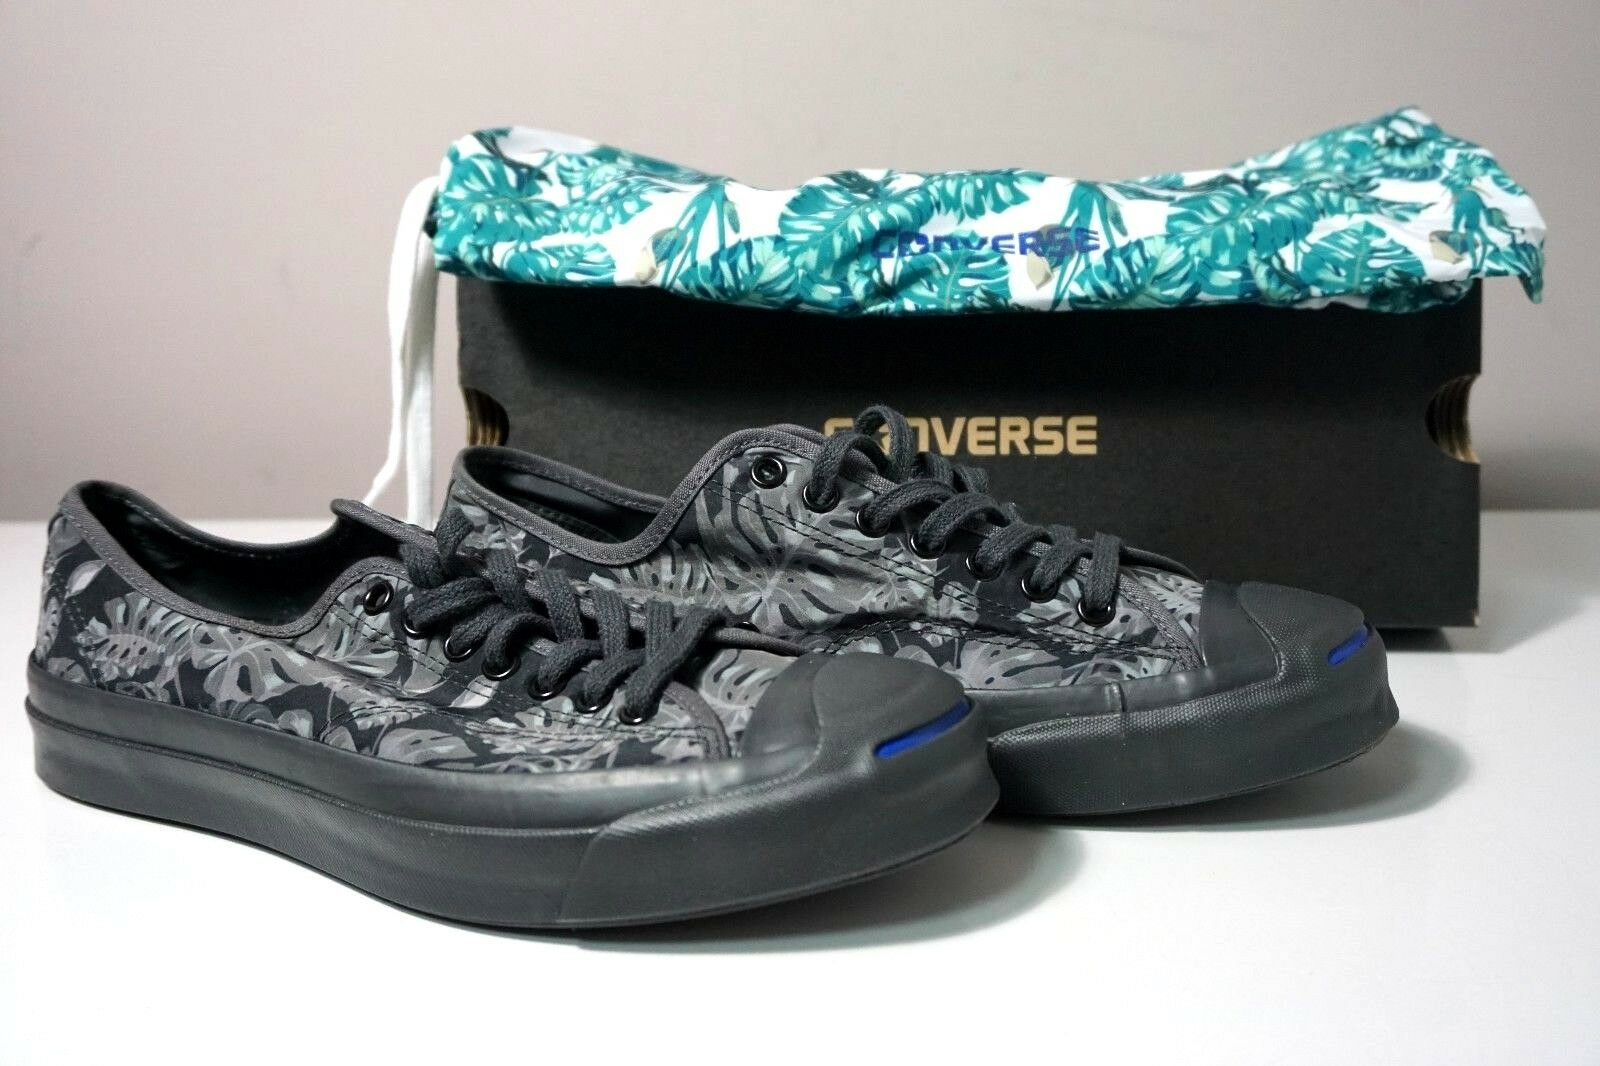 Converse Jack Purcell Signature Monstera Tropical Sneakers 153151C Sz M 8 W 9.5